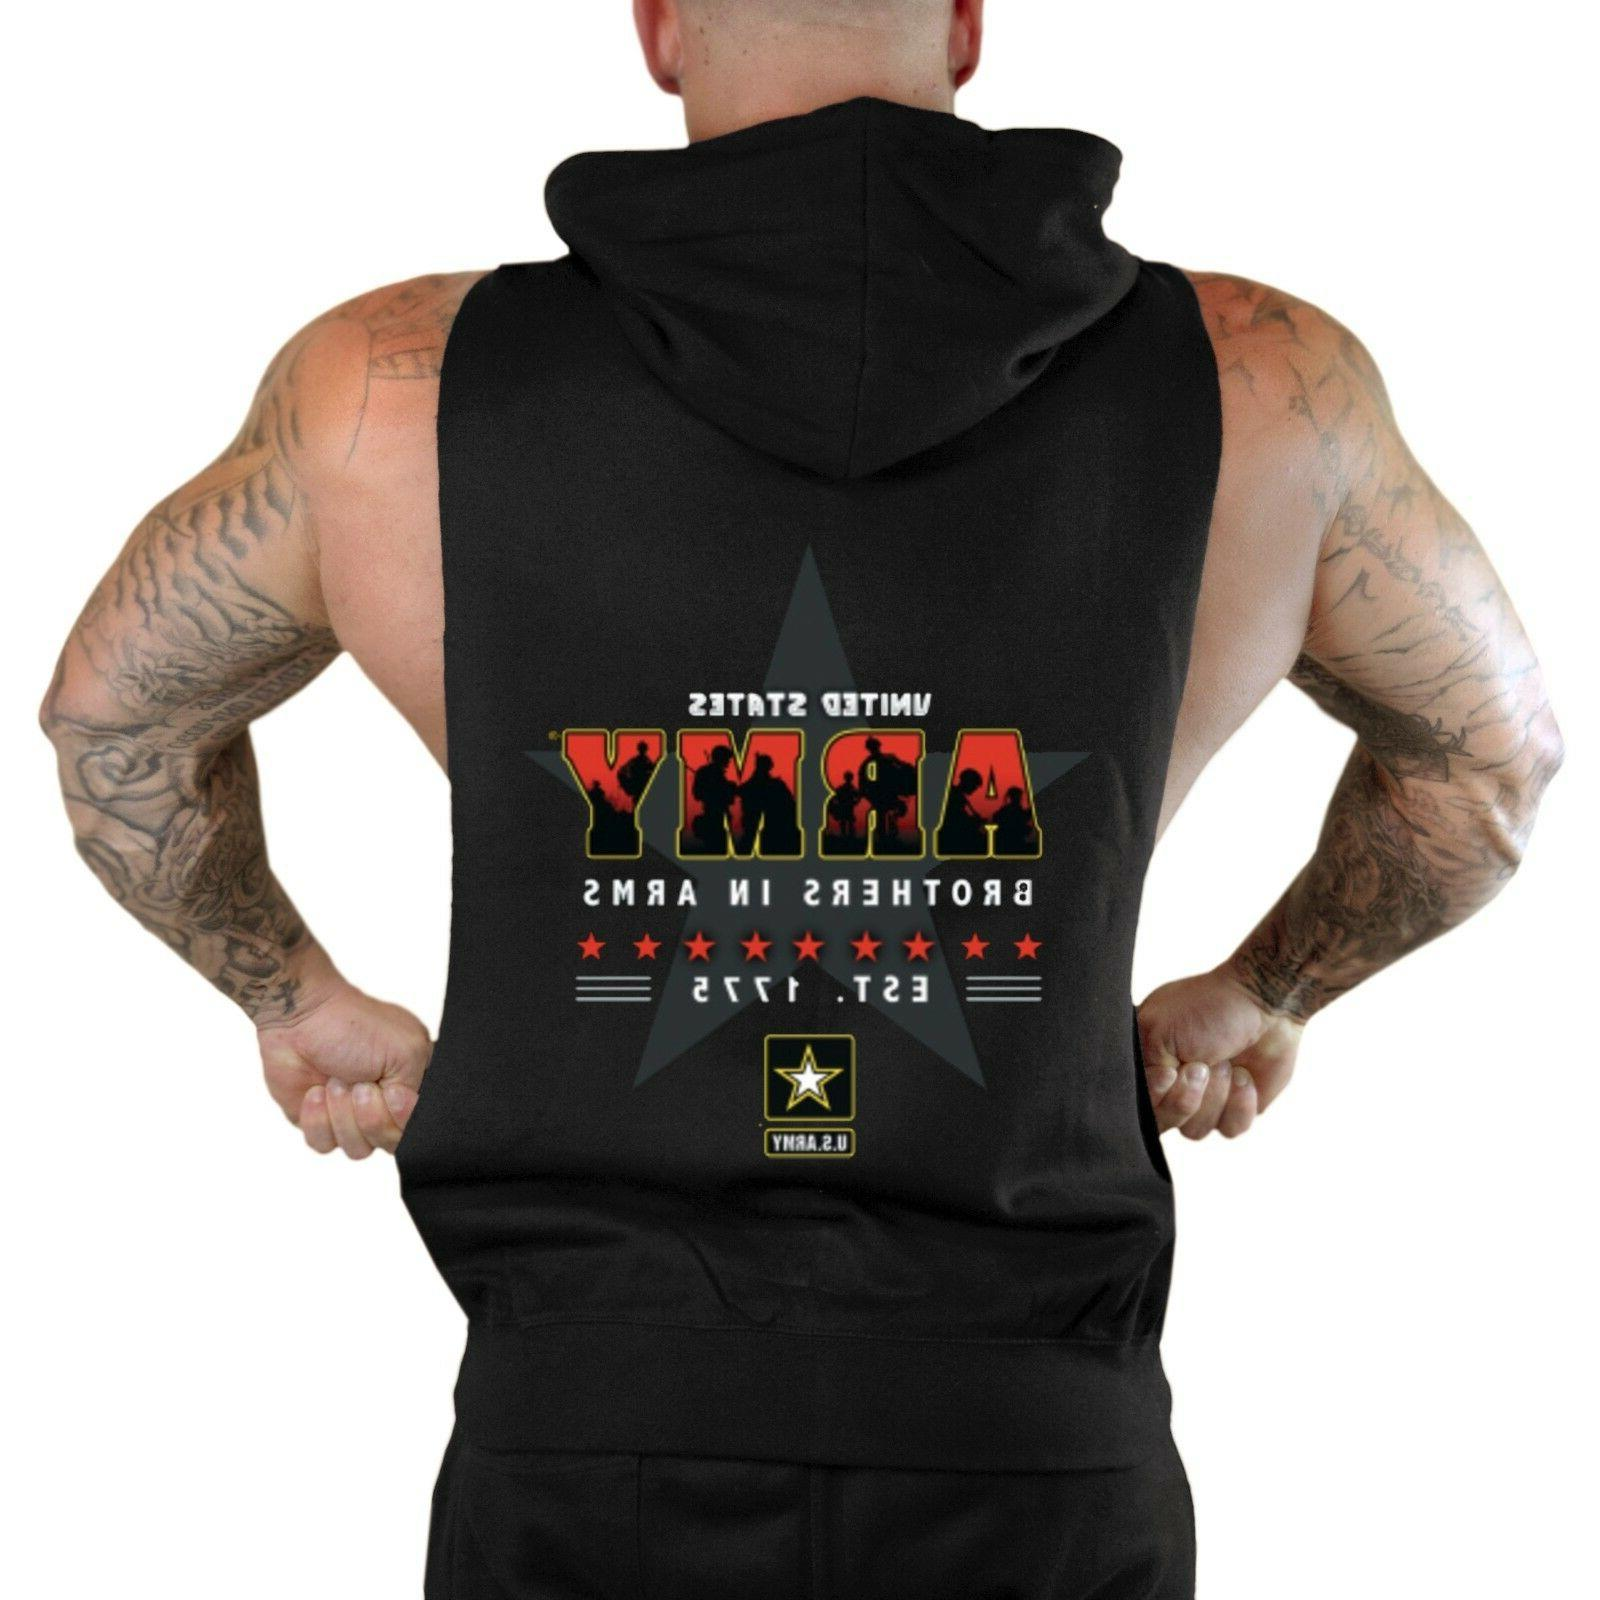 Men's Brothers In Arms Black Sleeveless Zipper Hoodie Workou